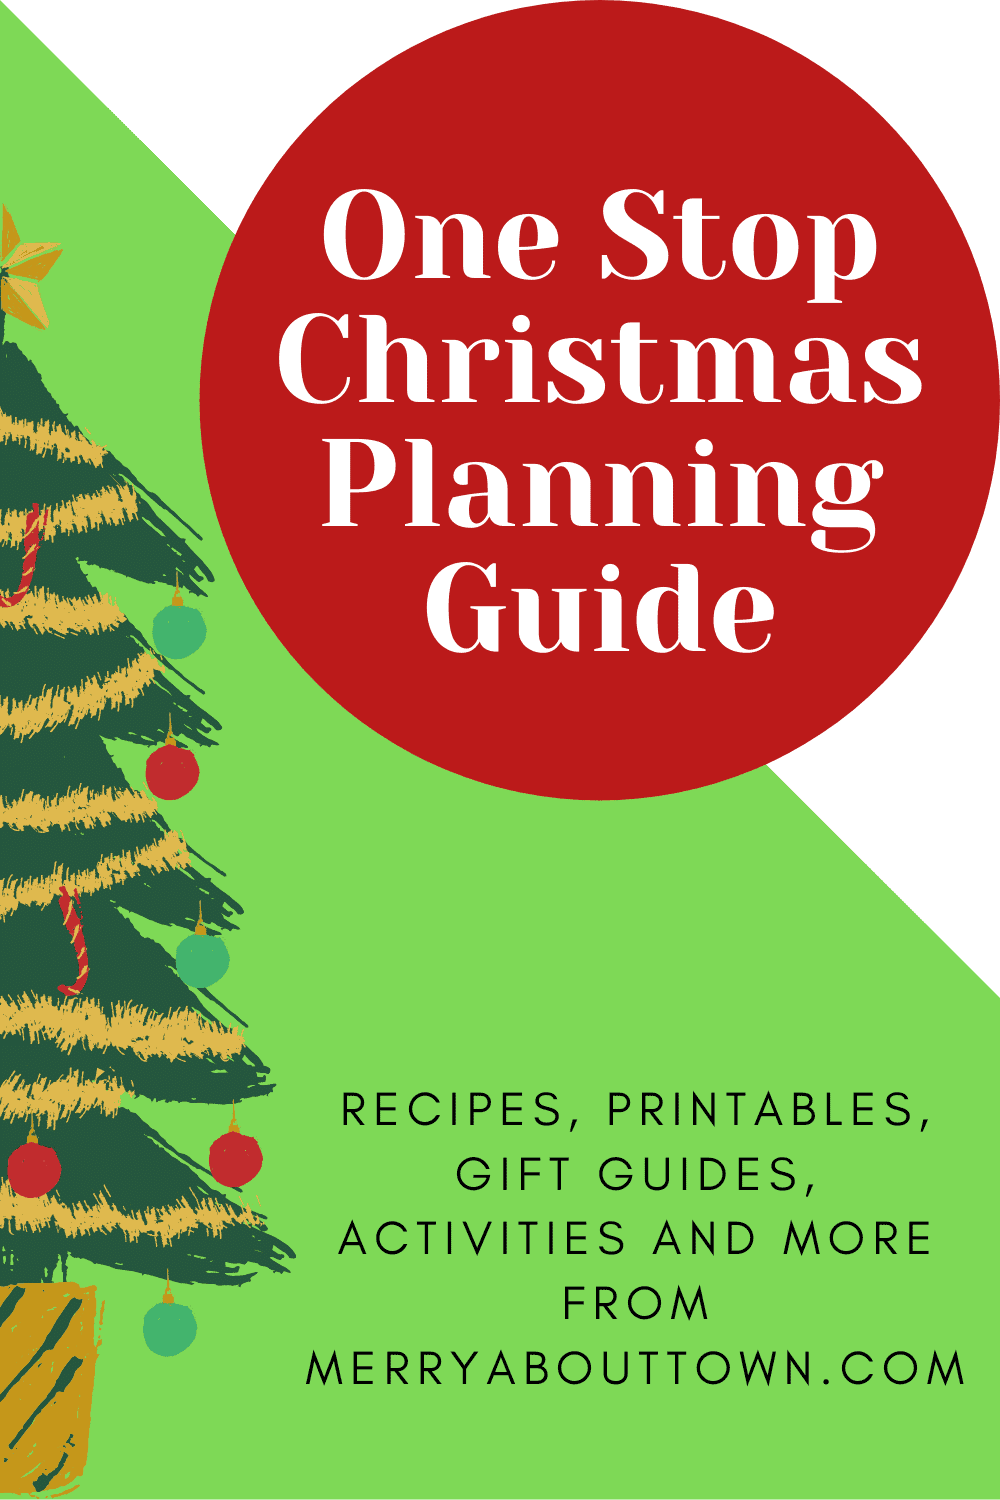 One Stop Christmas Planning Guide